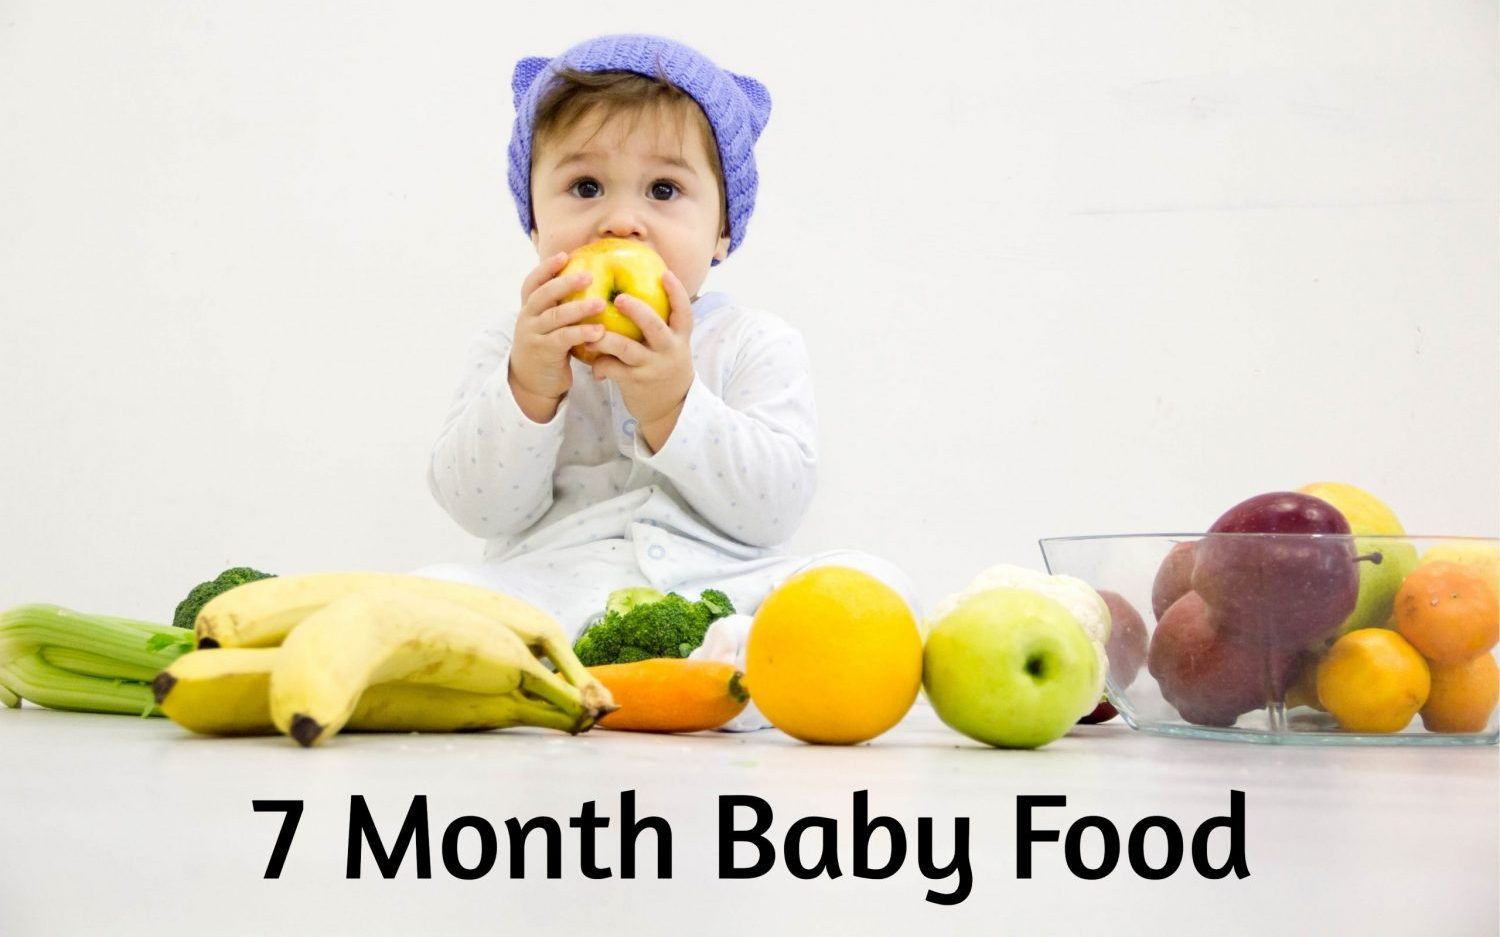 7-Month Baby Food : What to Give & What Not to Give